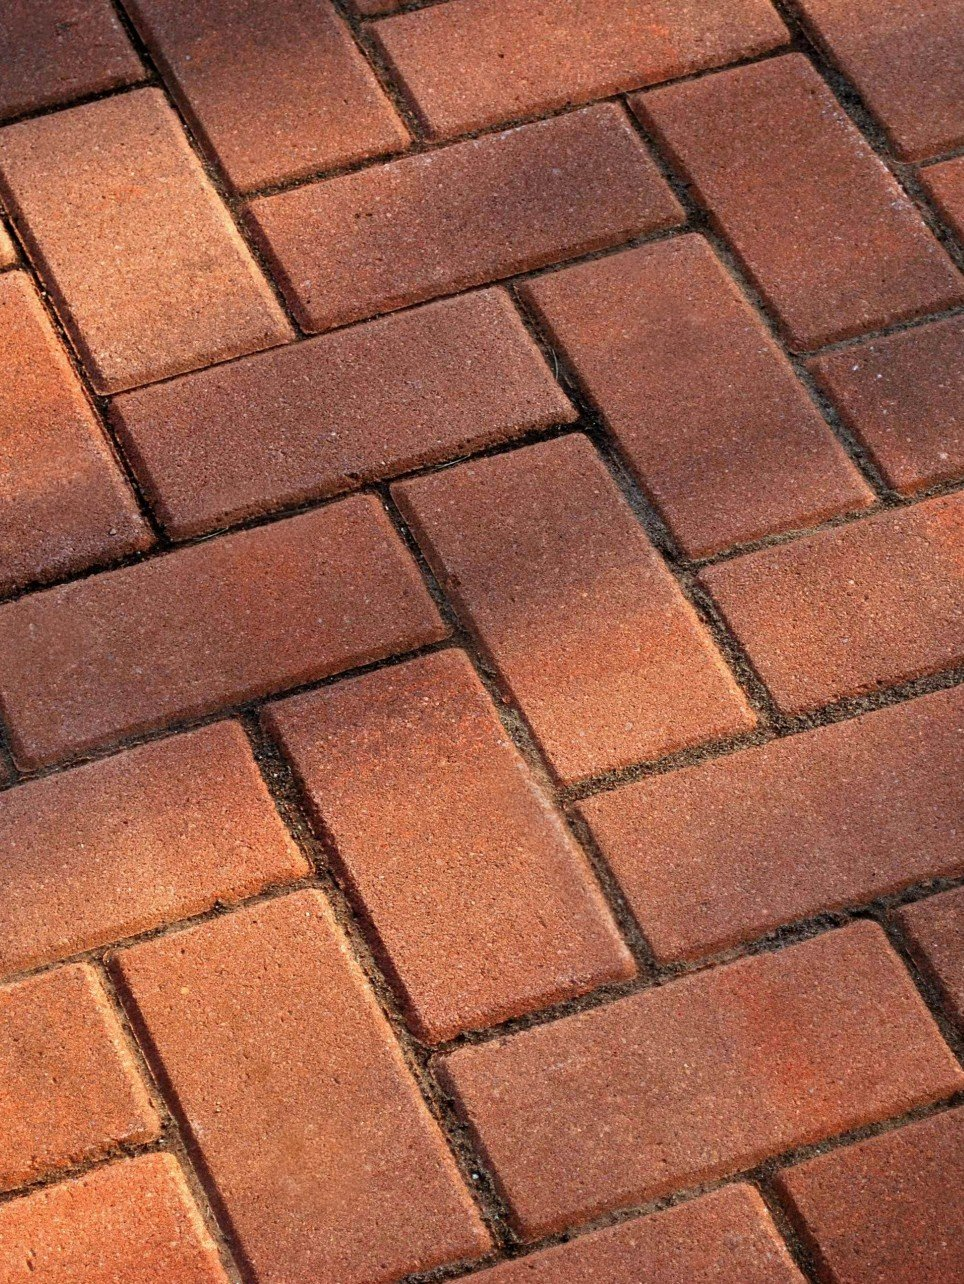 Block Paving Companies Rushwick